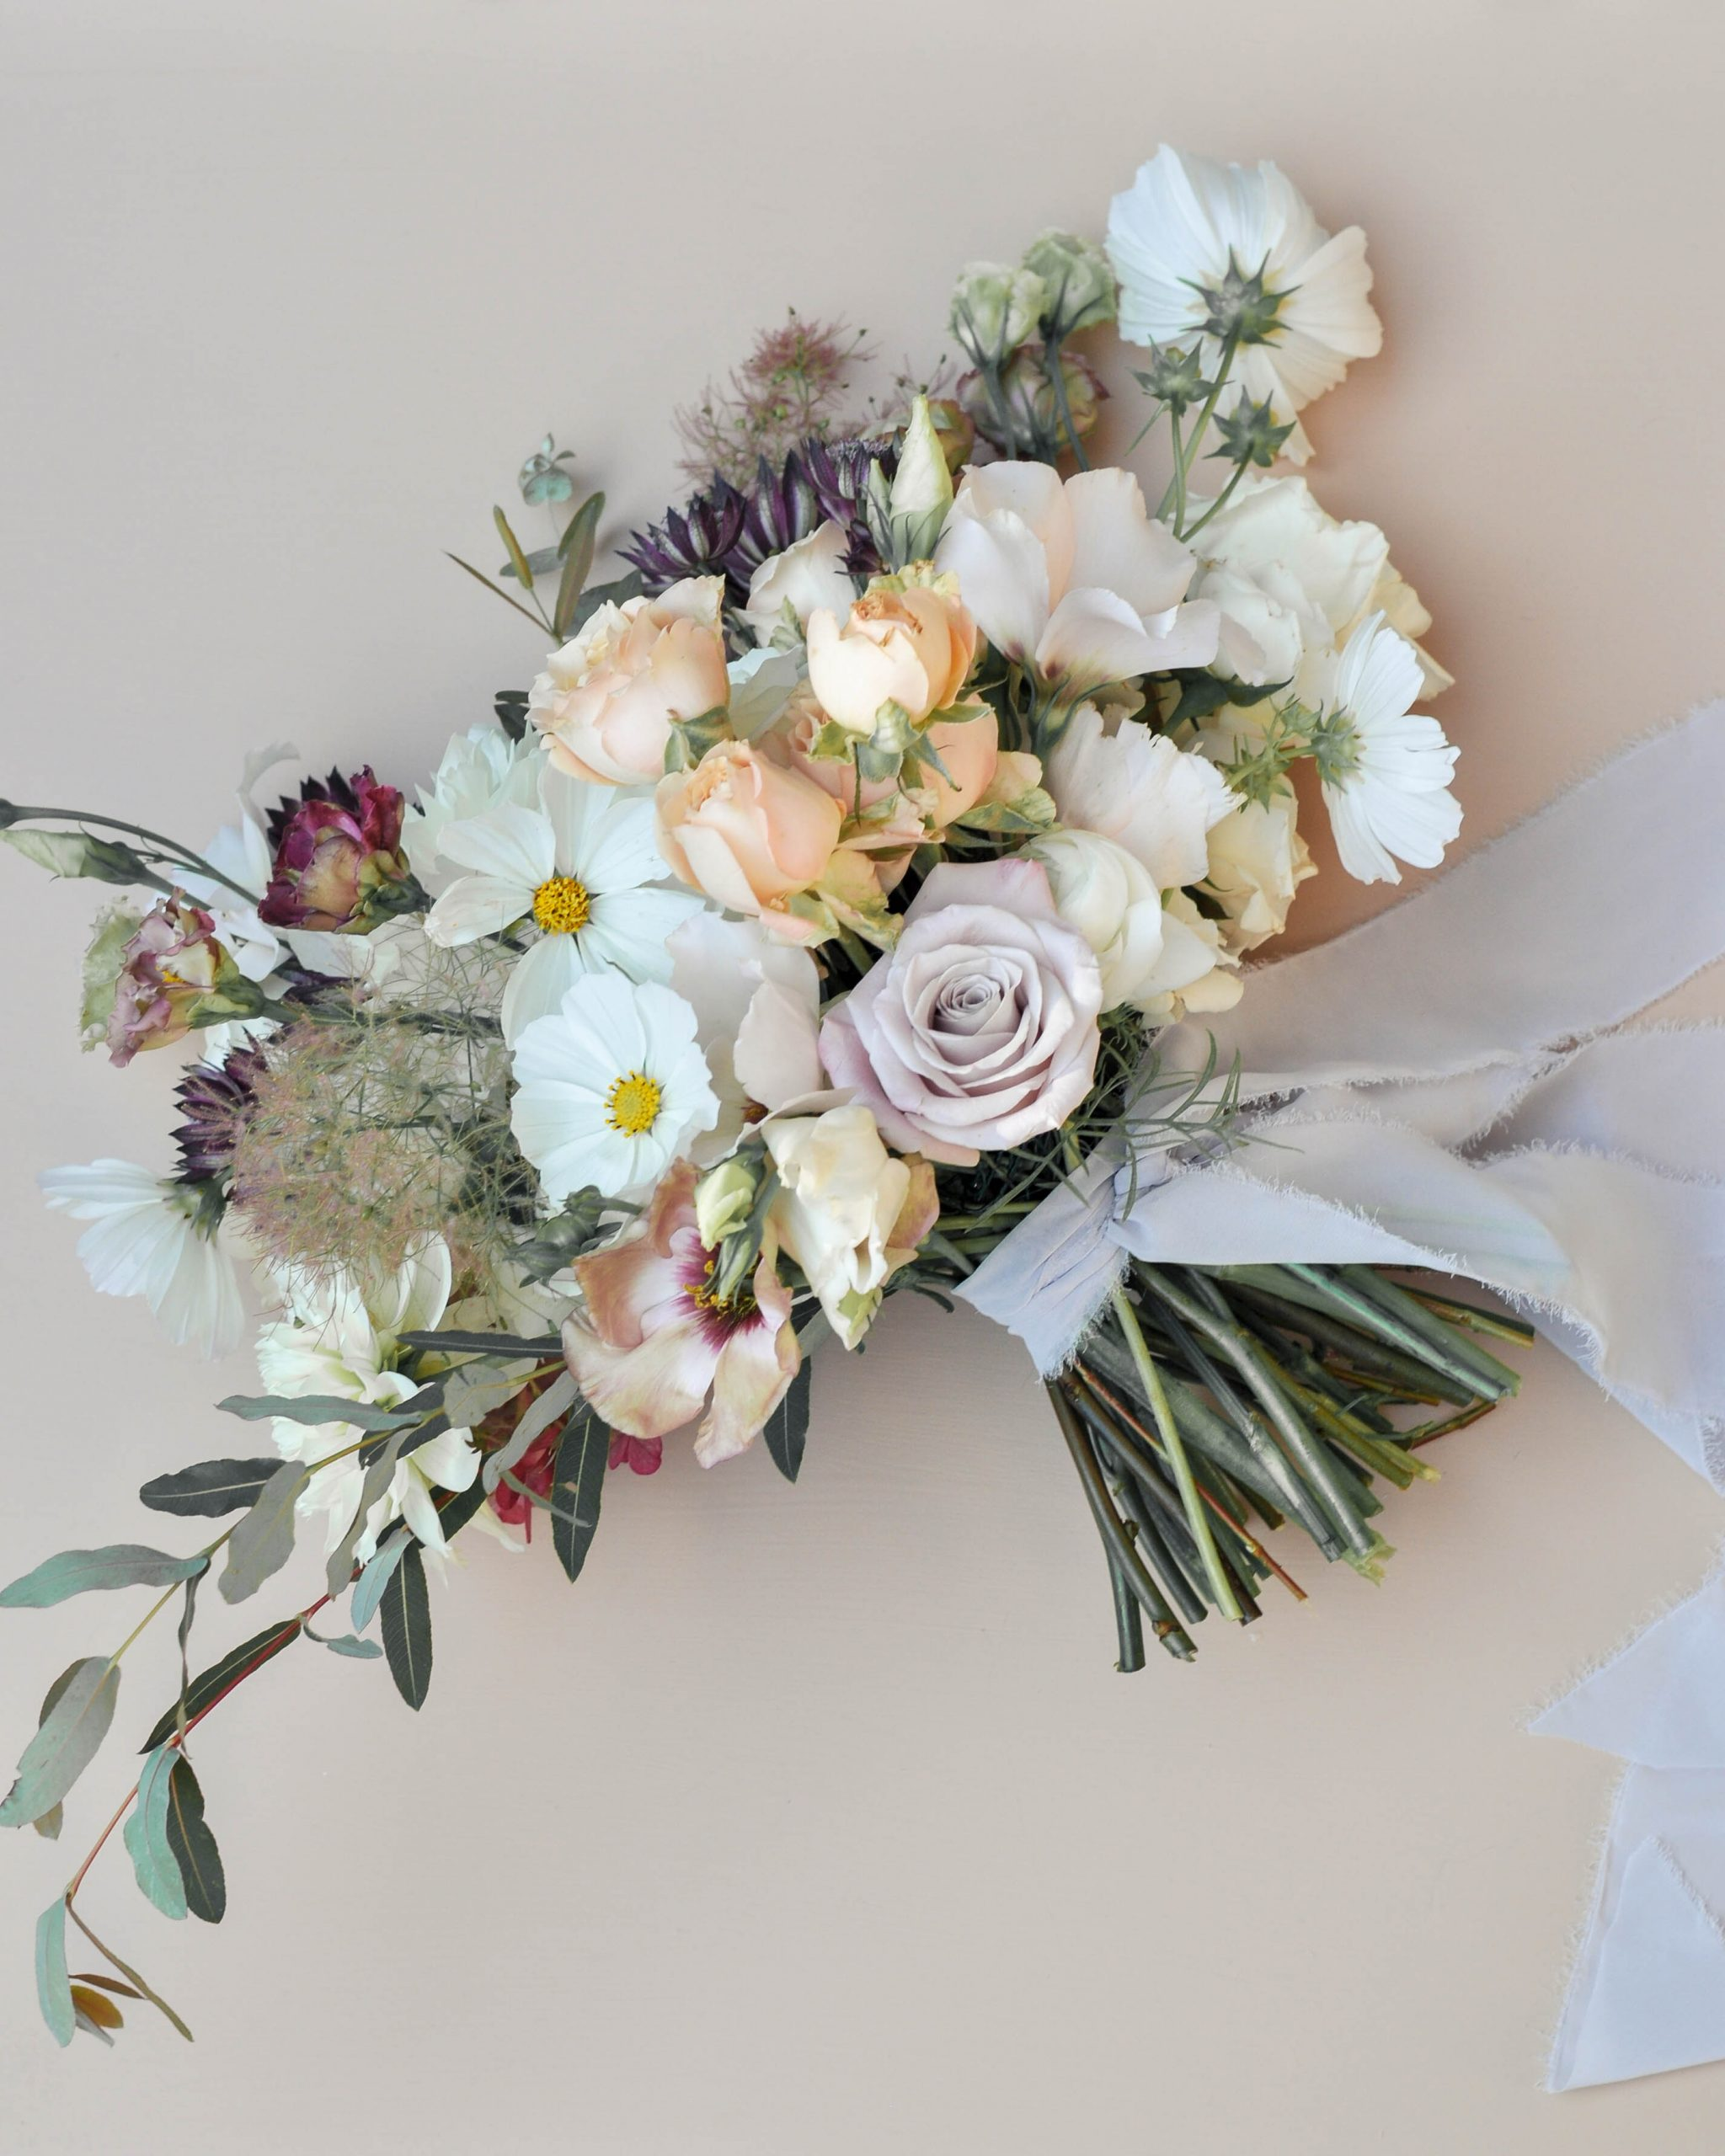 Emily is the co-owner of Evyrose, a floral design and event planning studio.